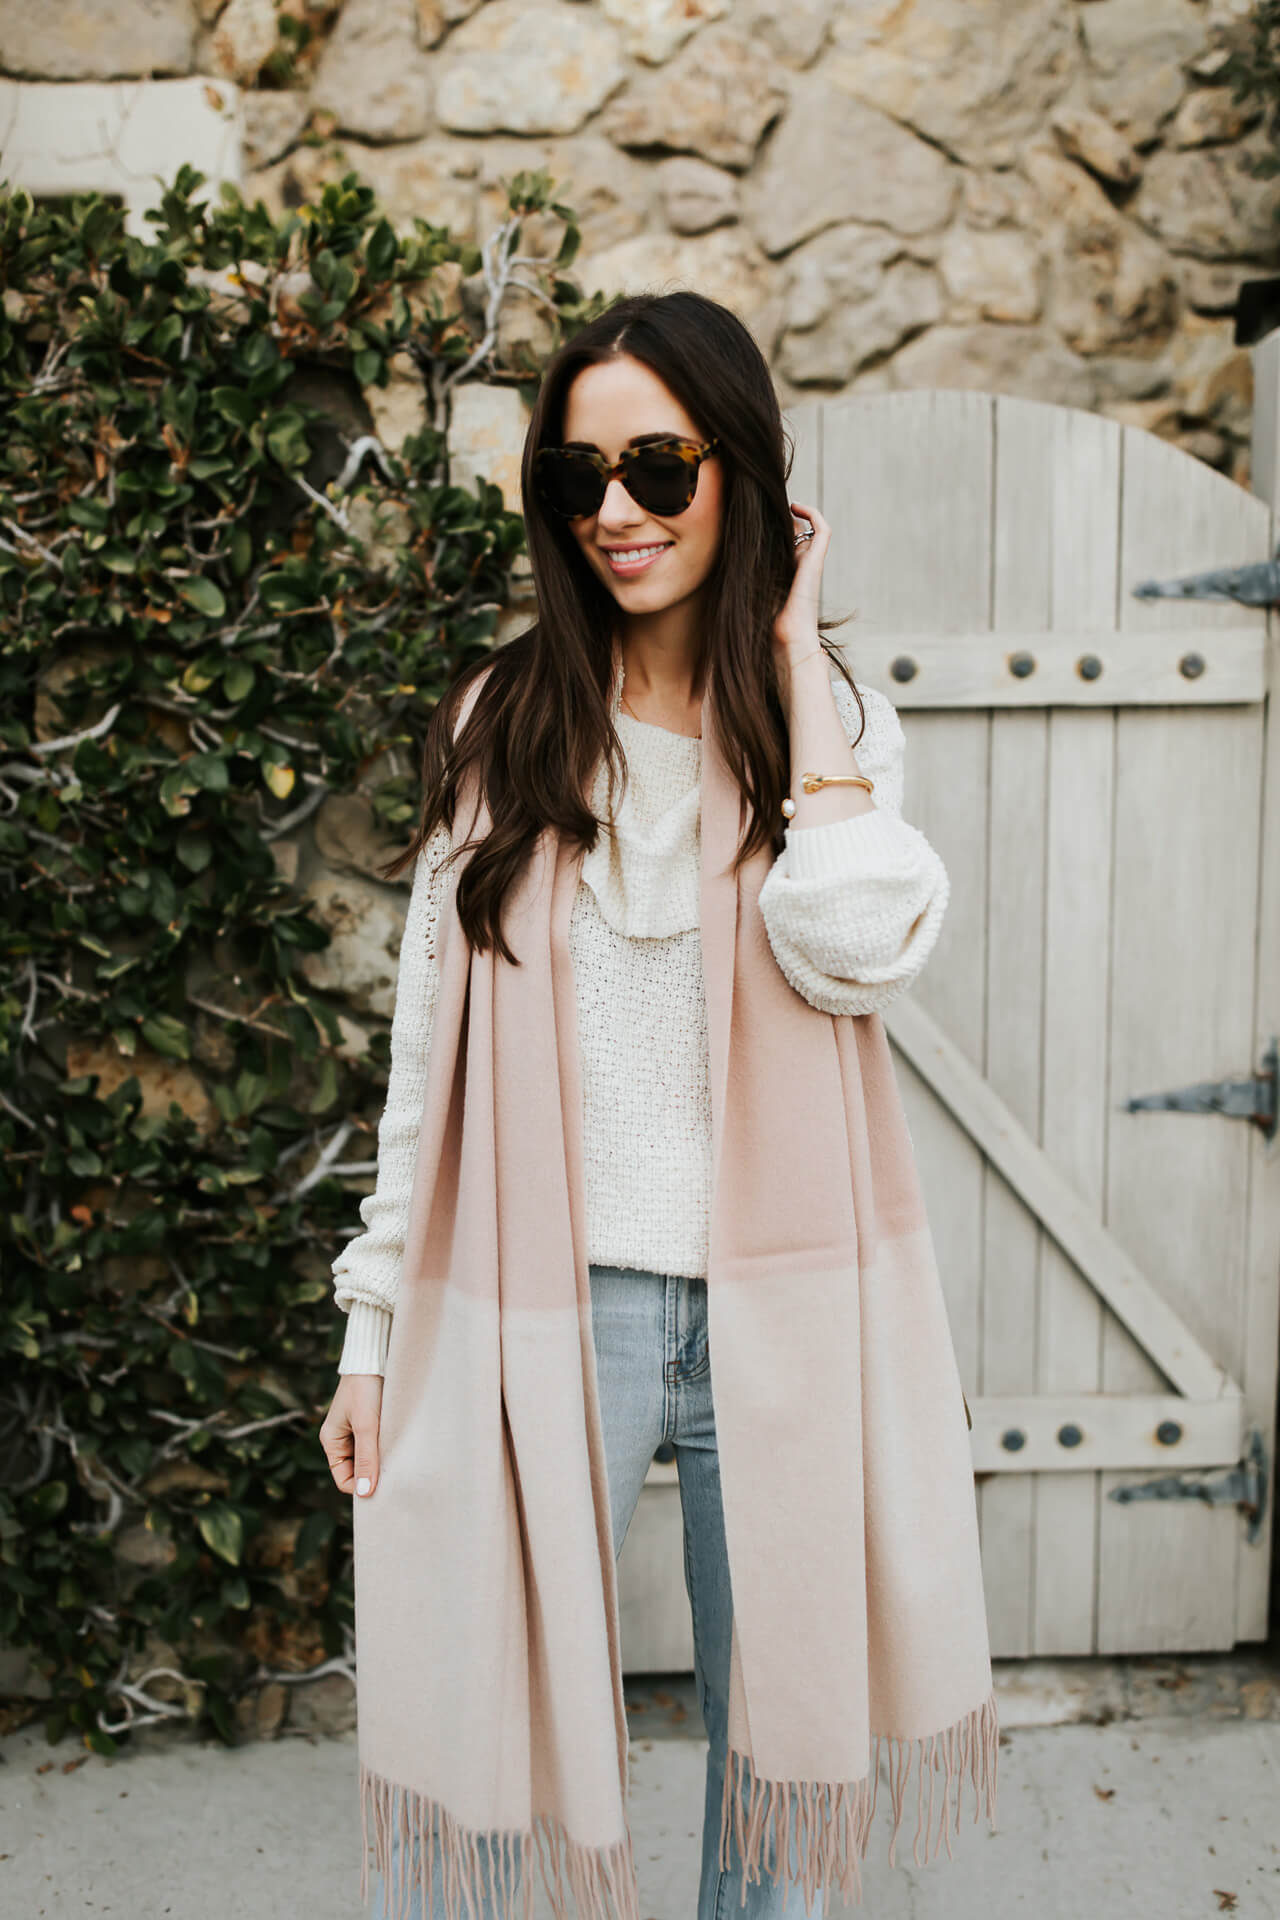 feminine outfit inspiration for winter - M Loves M LA & OC Fashion and Lifestyle Blogger @marmar